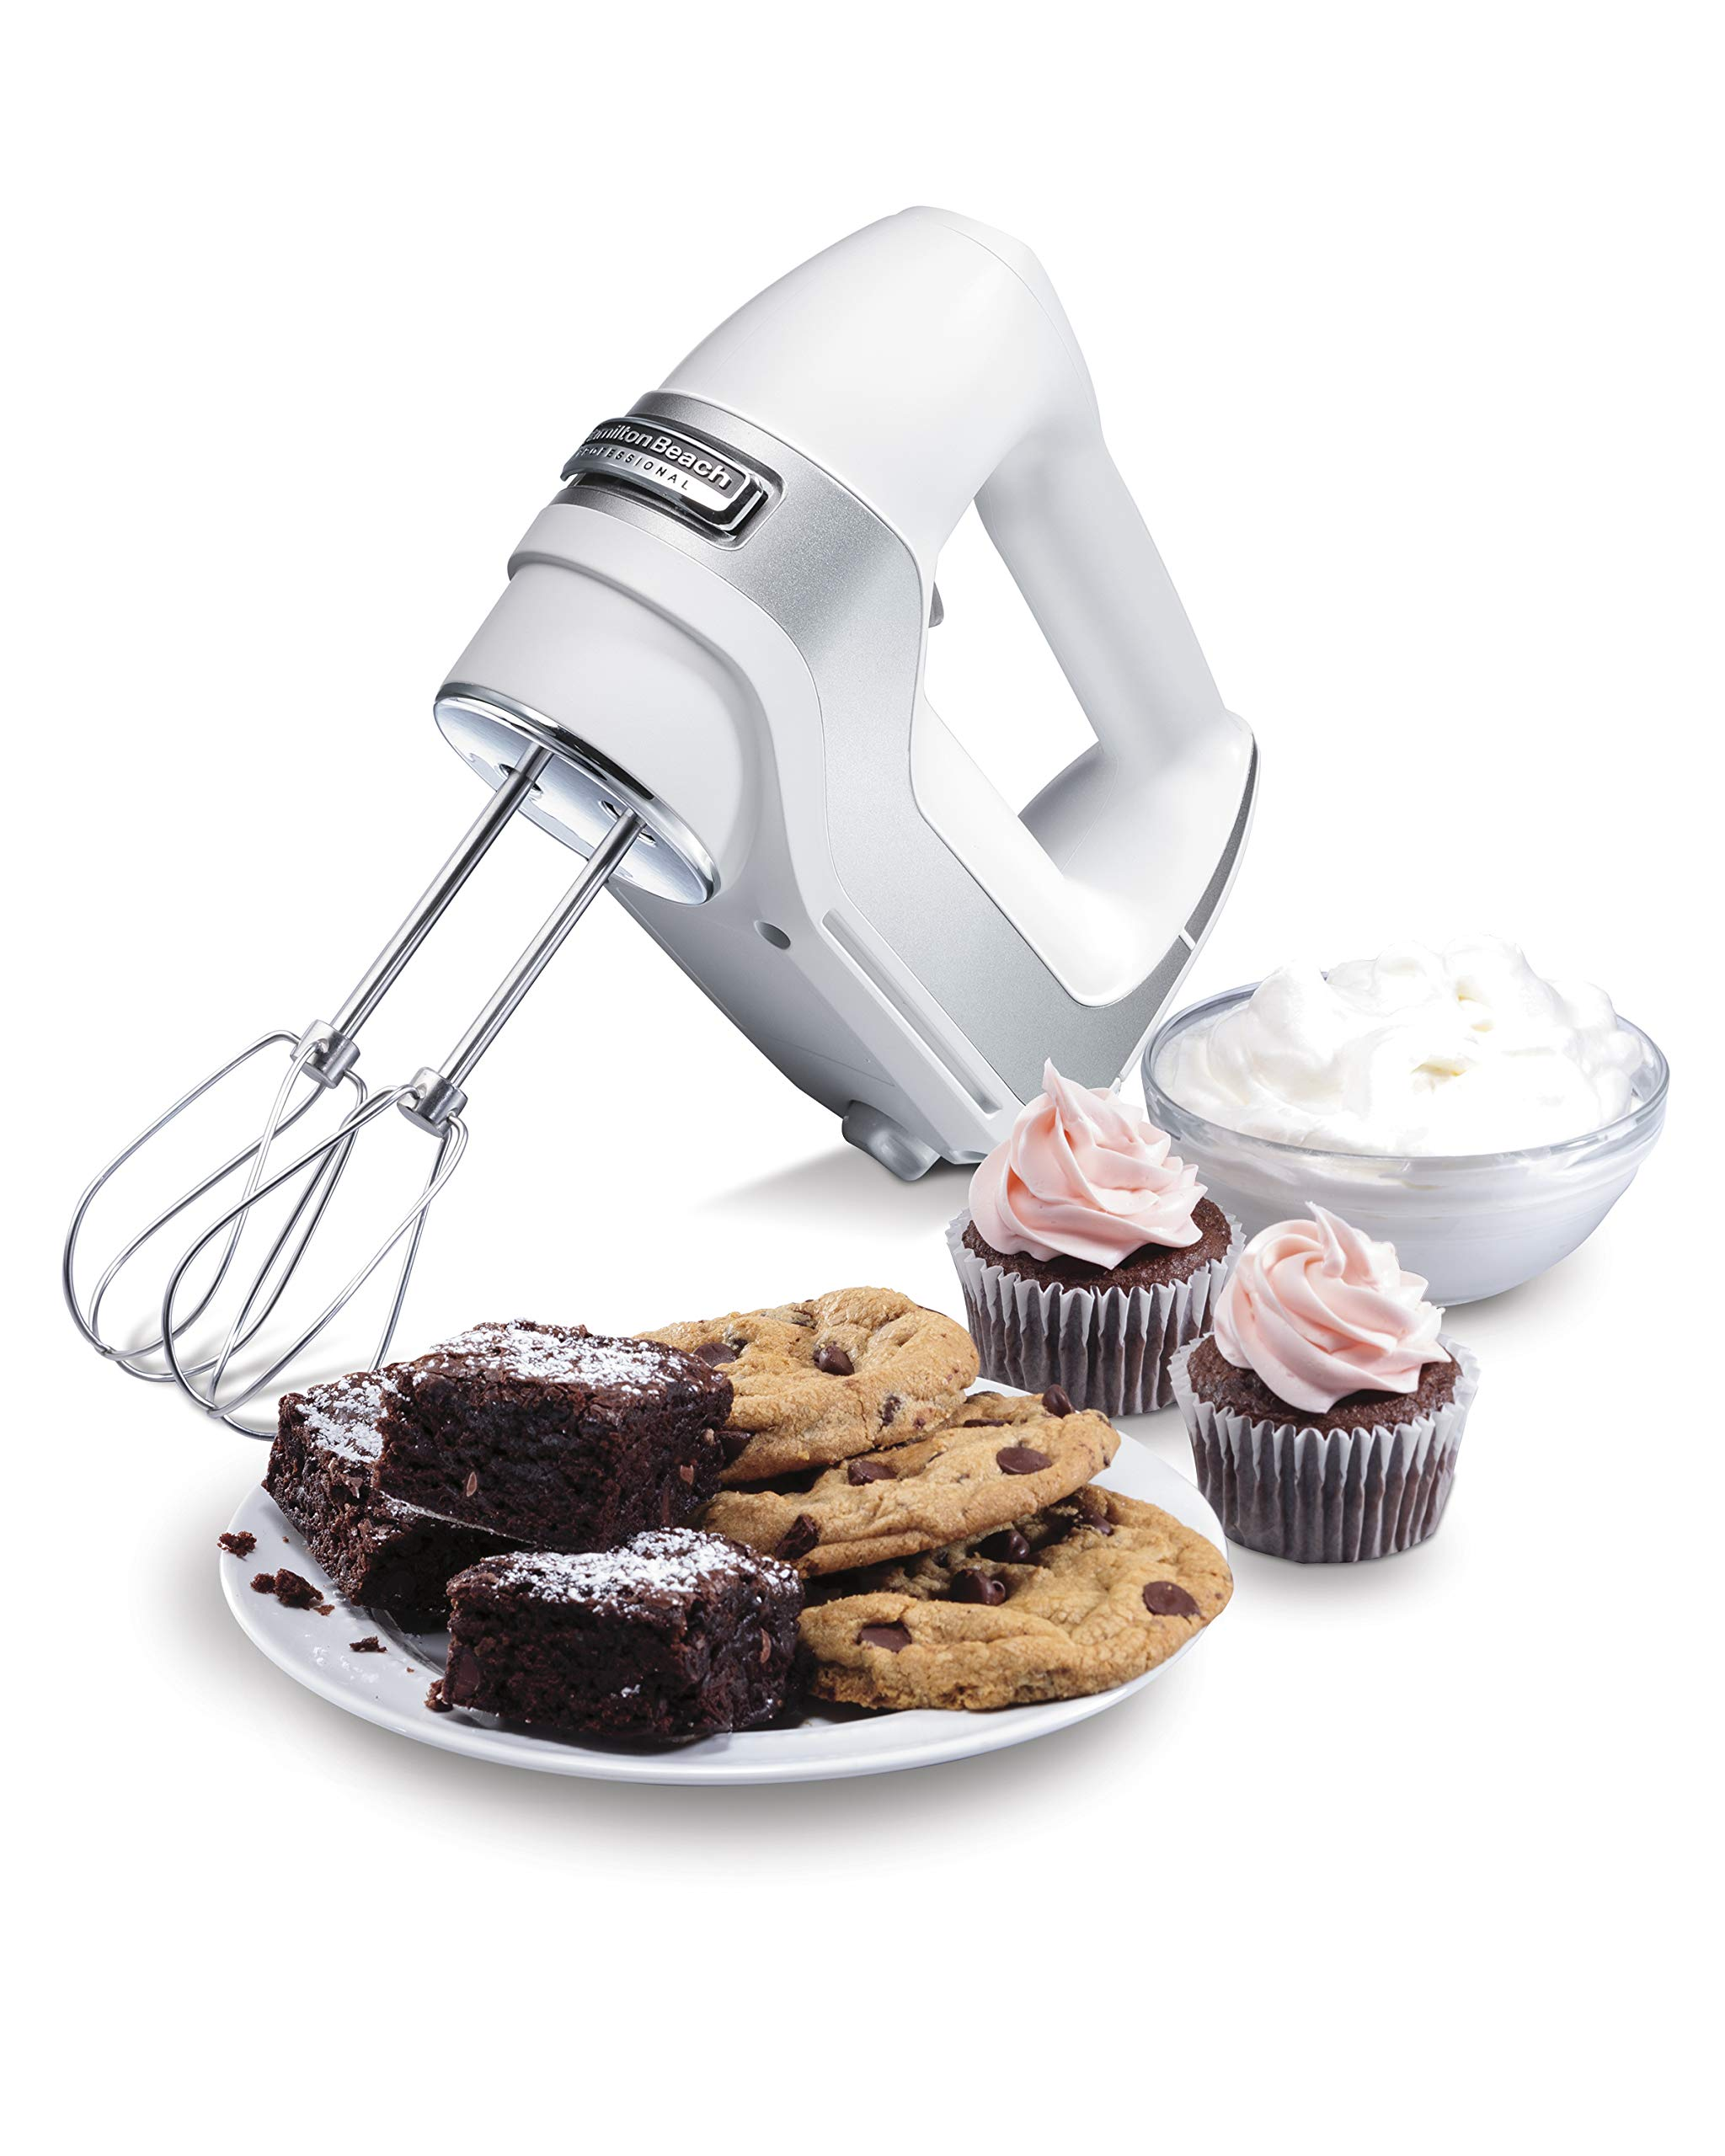 Hamilton Beach 5-Speed Electric Hand Mixer with Snap-On Storage Case, QuickBurst, Stainless Steel Twisted Wire Beaters and Whisk, White (62652) by Hamilton Beach